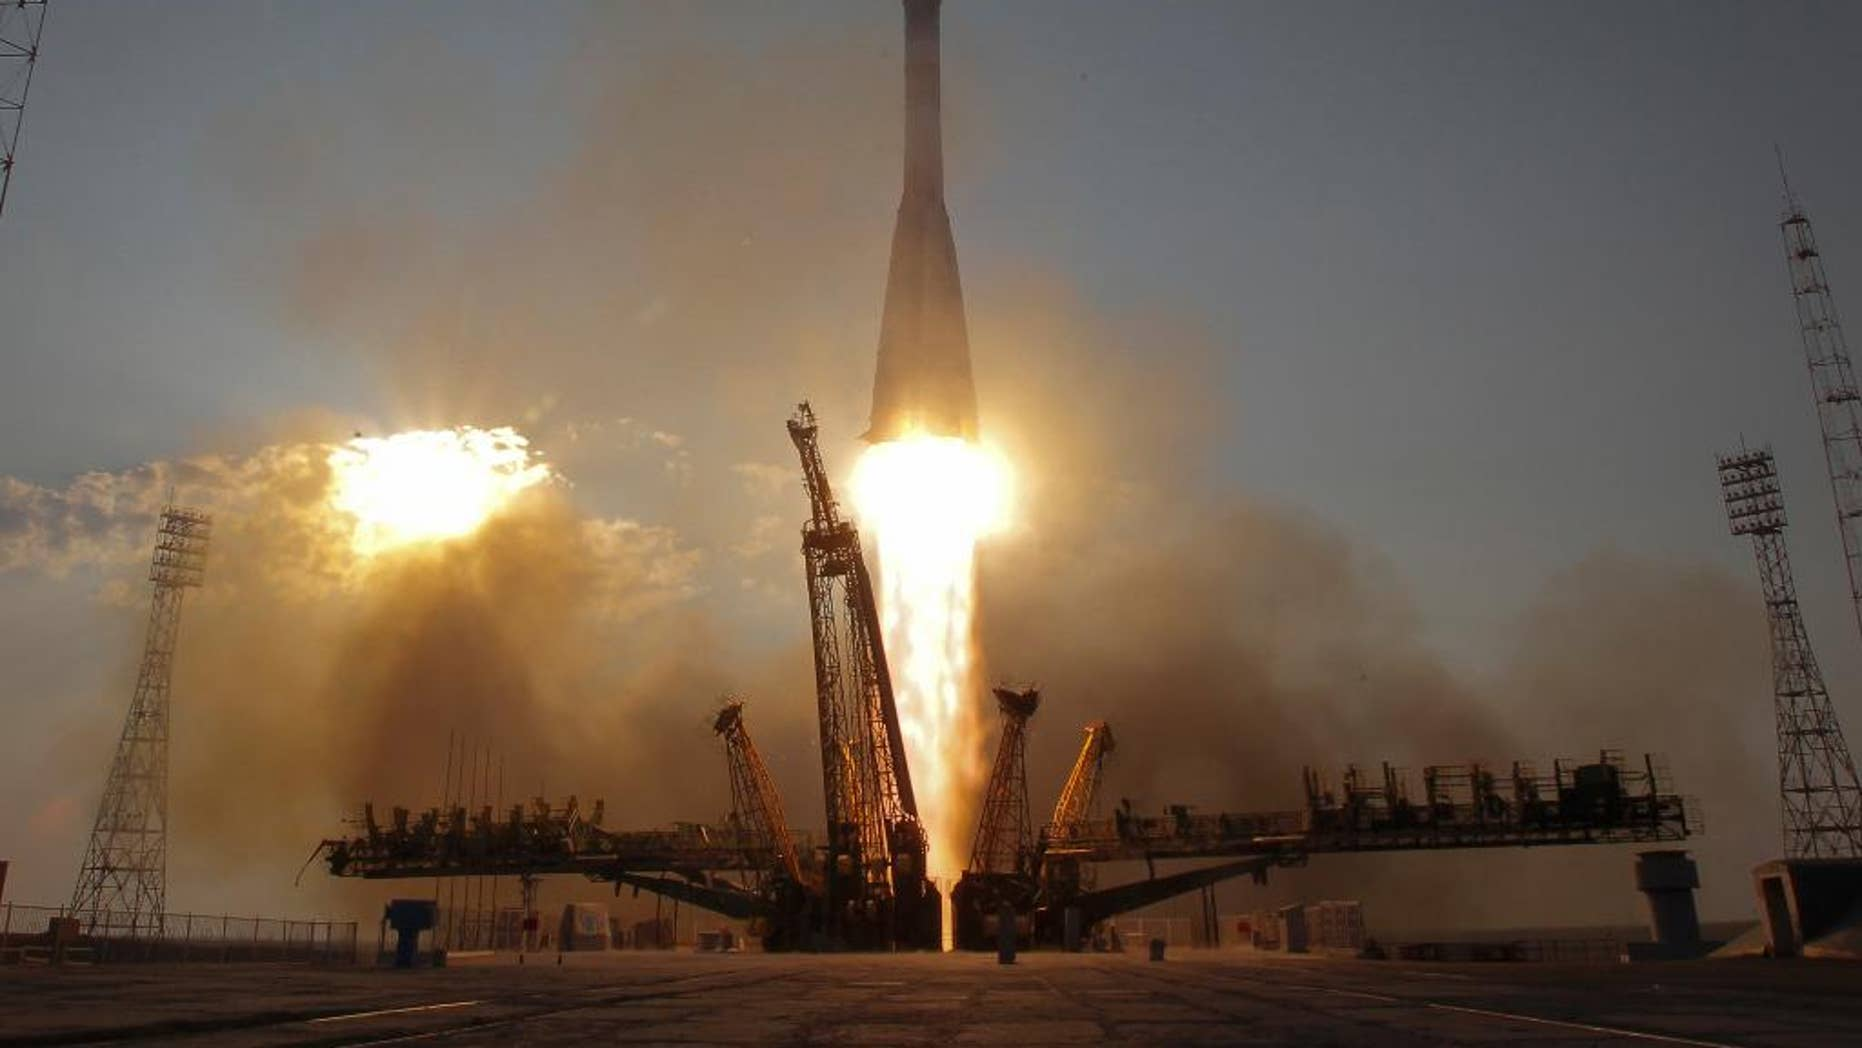 FILE - In this Thursday, July 7, 2016, file photo, the Soyuz-FG rocket booster with Soyuz MS space ship carrying a new crew to the International Space Station, ISS, blasts off at the Russian leased Baikonur cosmodrome, Kazakhstan. The capsule carrying astronauts from Russia, Japan and the United States has docked with the International Space Station Saturday after a two-day voyage. (AP Photo/Dmitri Lovetsky, File)